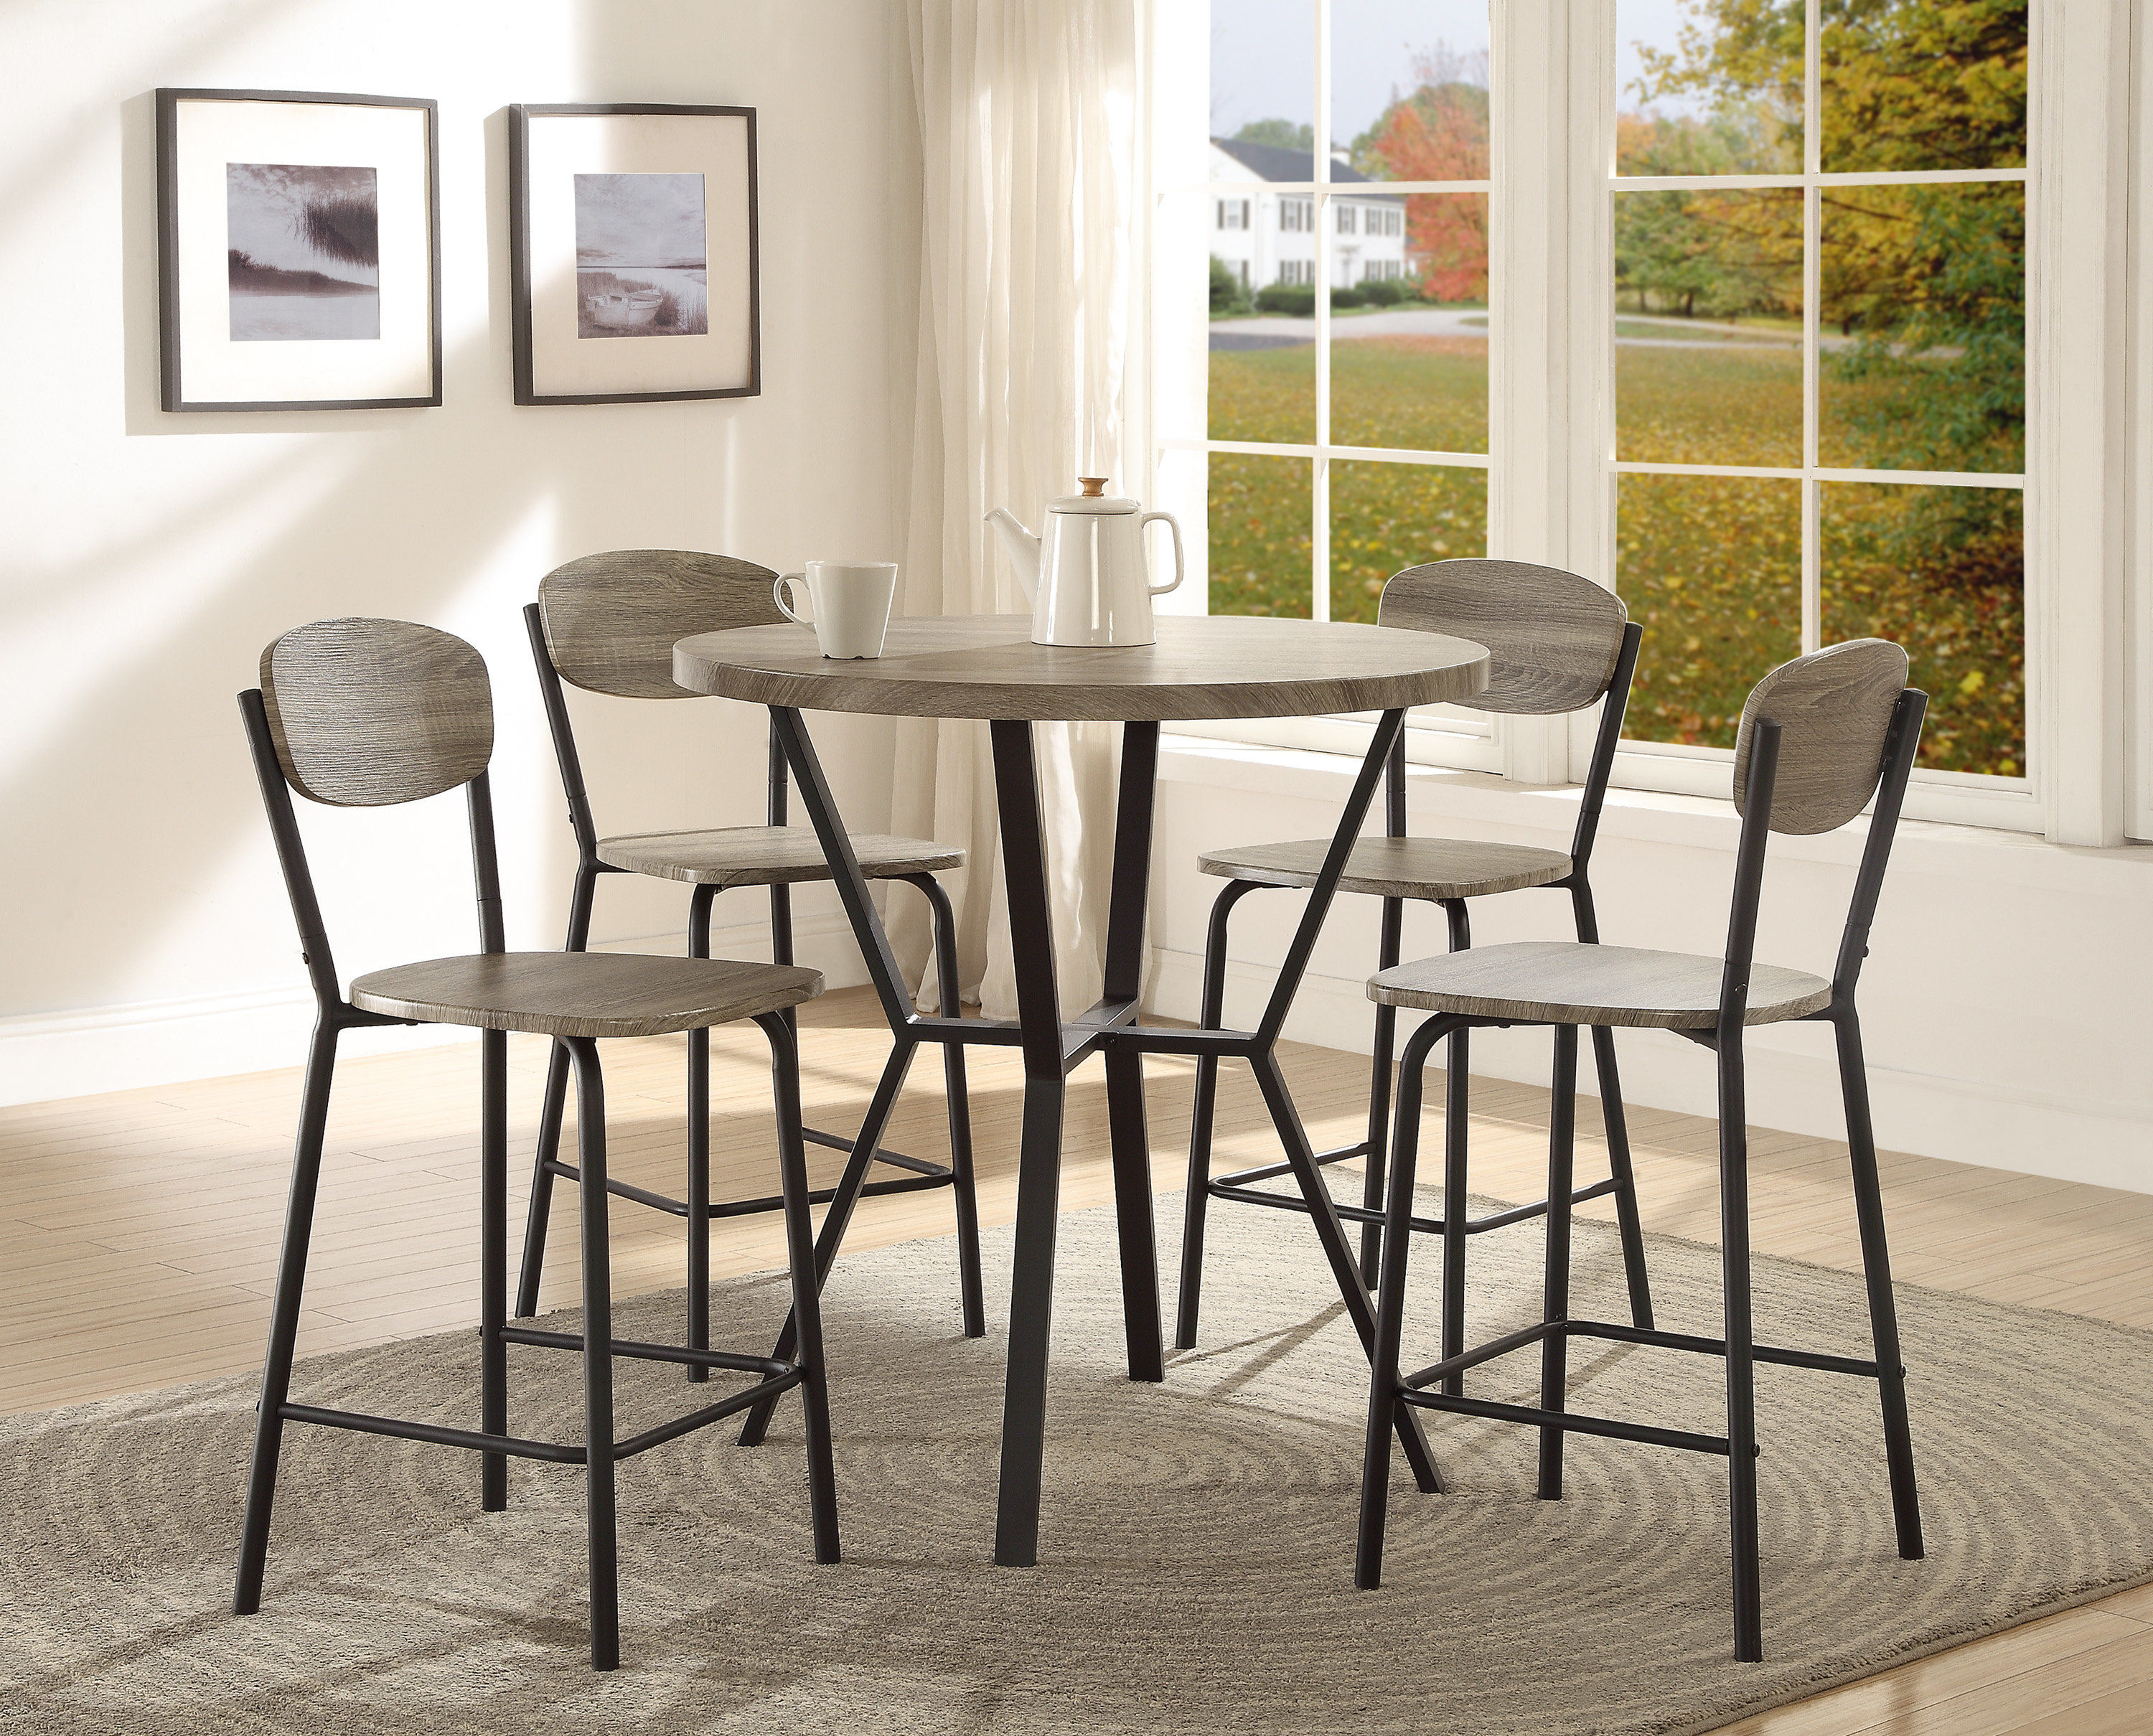 Inspiration about Preferred Middleport 5 Piece Dining Sets Pertaining To Millwood Pines Felicia 5 Piece Counter Height Dining Set & Reviews (#4 of 20)